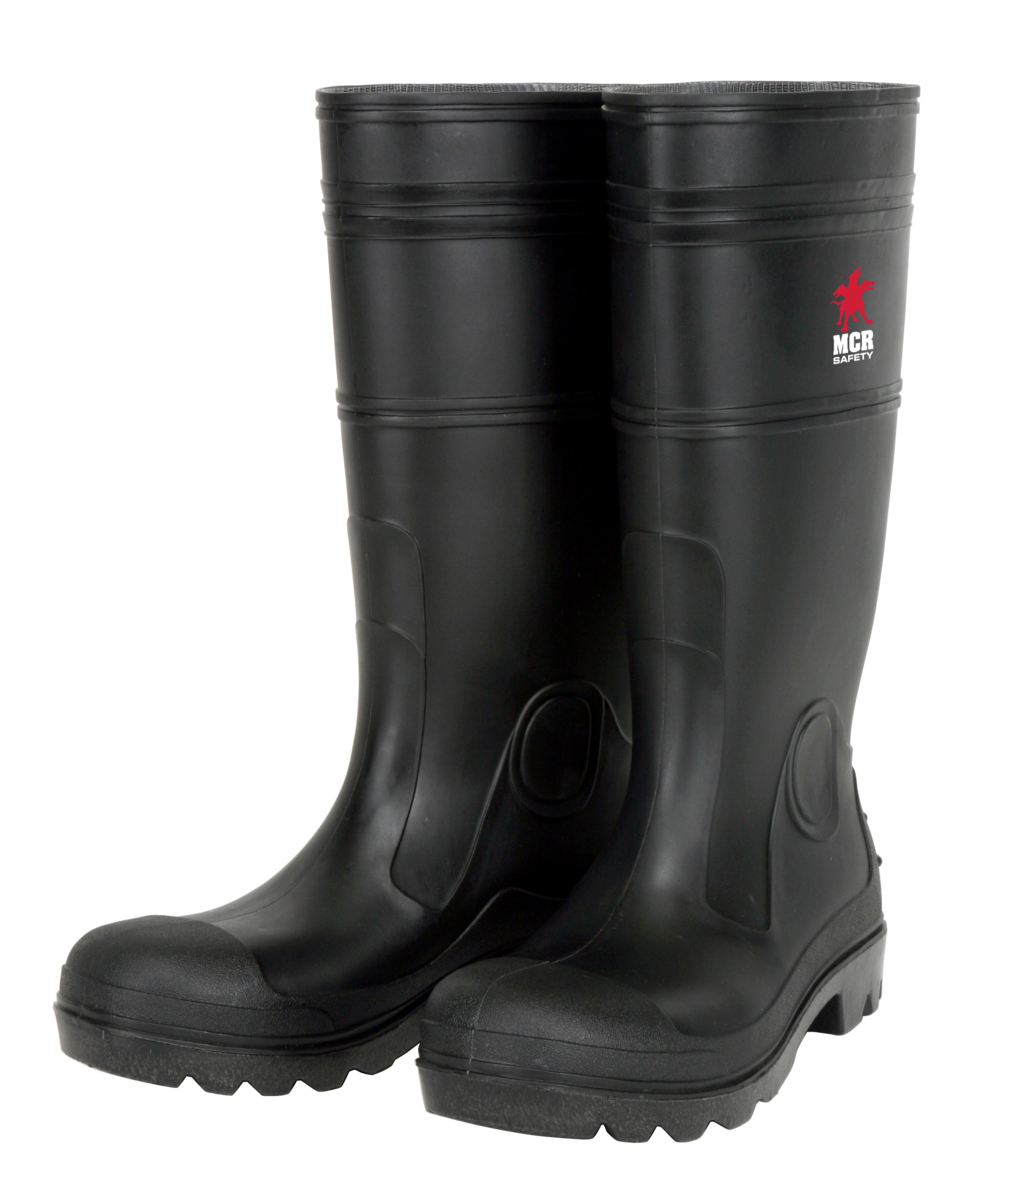 ee696129be1 PBS120 - Safety Gear  MCR Safety